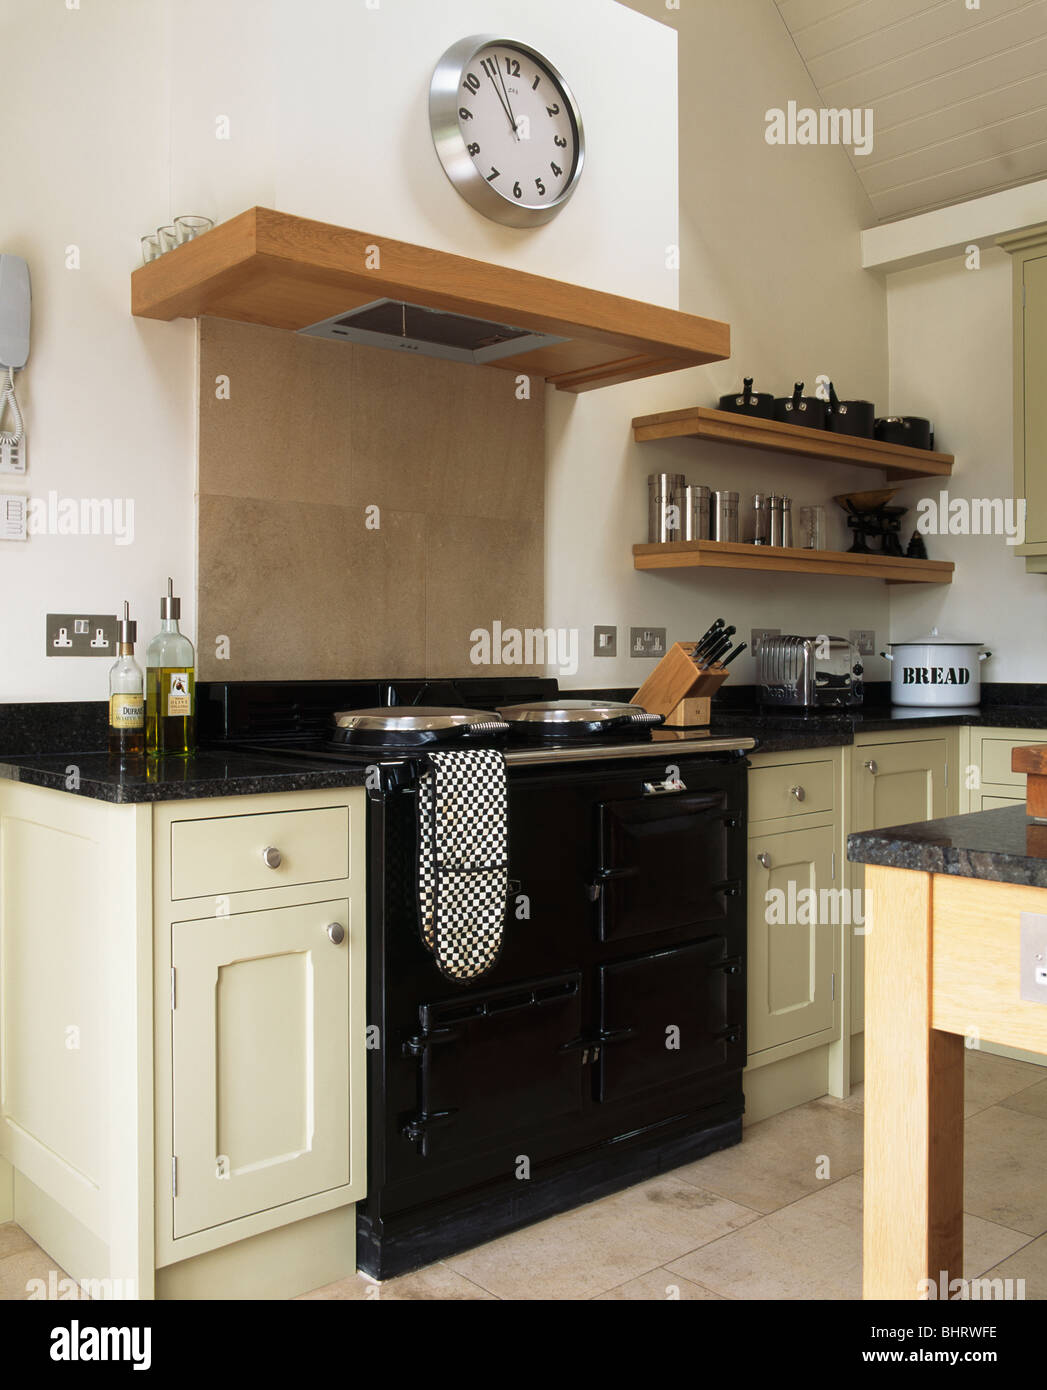 Black Country Kitchen circular stainless steel clock above black aga oven in modern